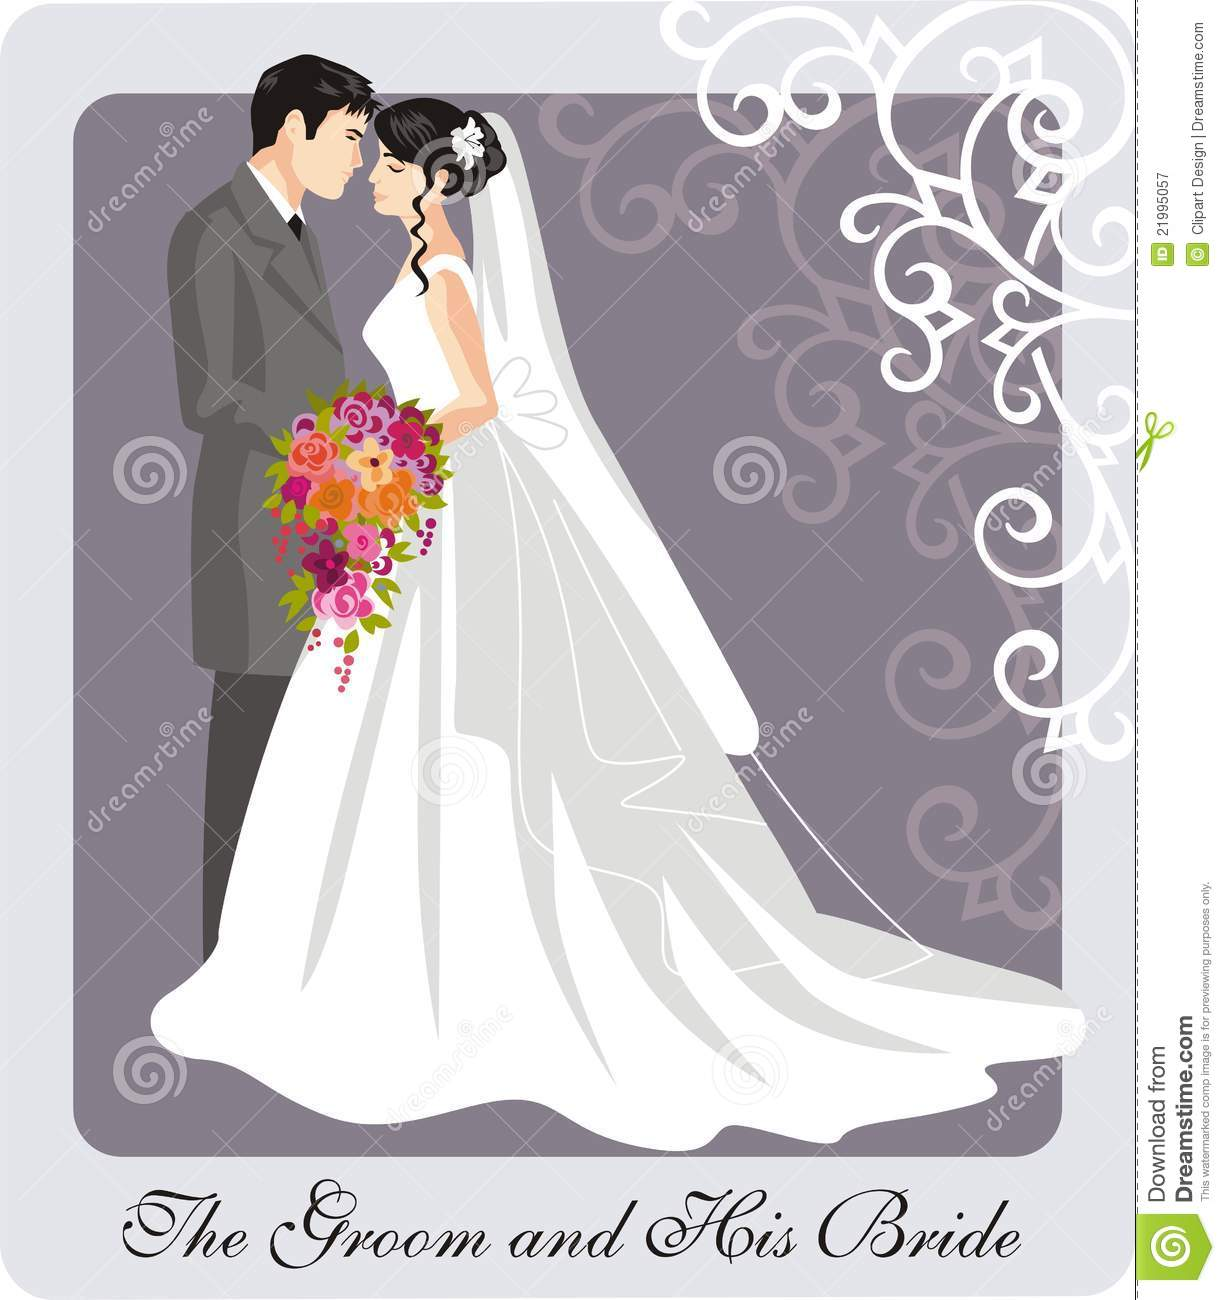 map on wedding invitation with Royalty Free Stock Photography Wedding Illustration Image21995057 on Stock Illustration Feliz Aniversario Portuguese Happy Birthday Card Retro Style Decorative Lettering Cute Birds Image46929083 together with Caricature wedding invitations also Stock Illustration Lavender Seamless Pattern Hand Drawn Floral Elements Engraving Style Fragrant Vector Illustration Image56560792 furthermore Royalty Free Stock Photography Wedding Illustration Image21995057 additionally Just Married Car Plate.